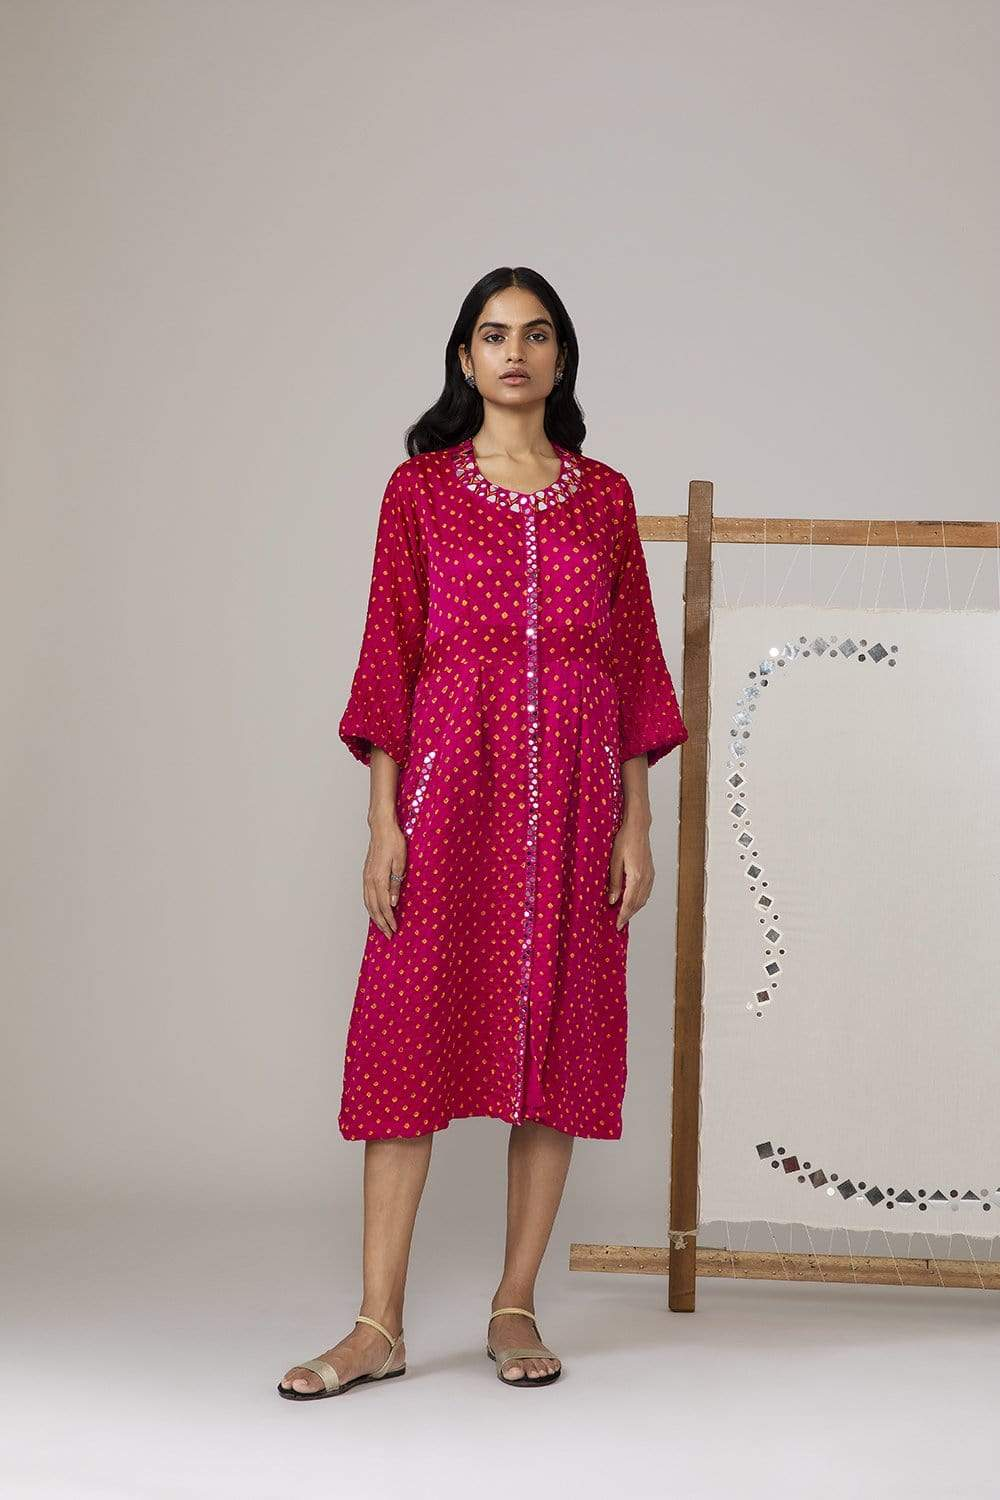 Twenty Nine Dresses Bandhani yoke dress